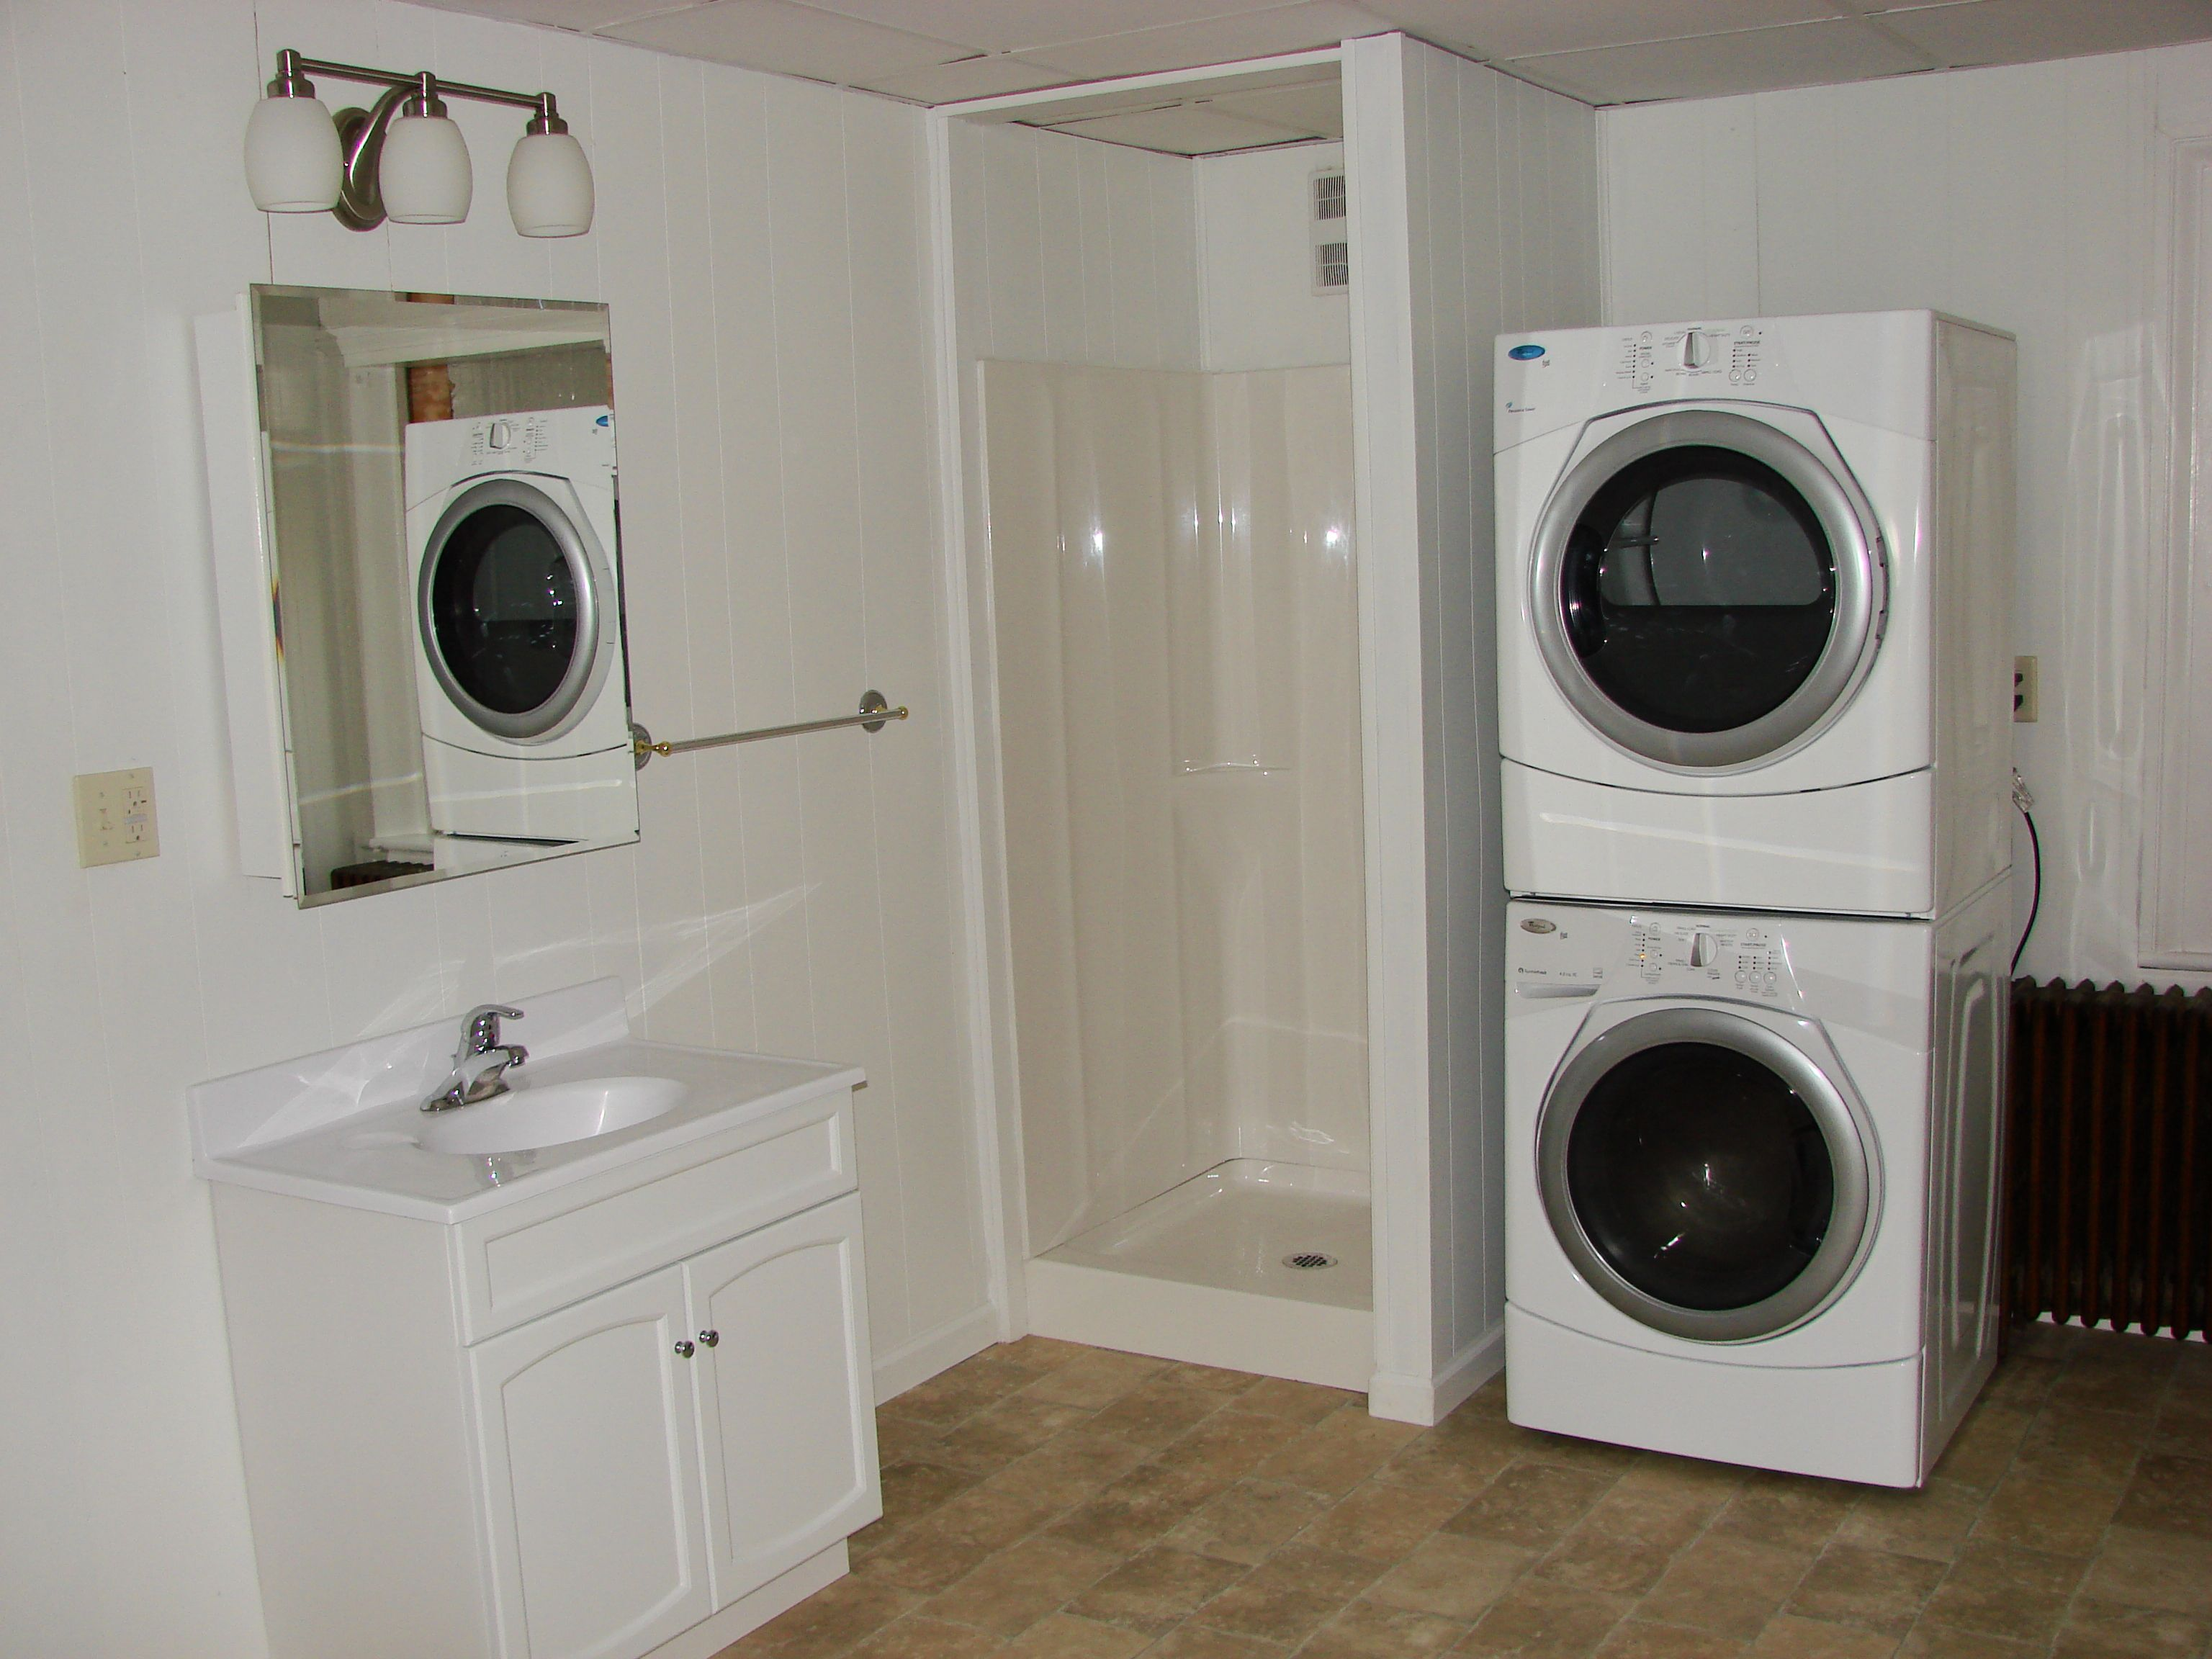 Cool white wash machine and dry machine on the side of for Utility room design